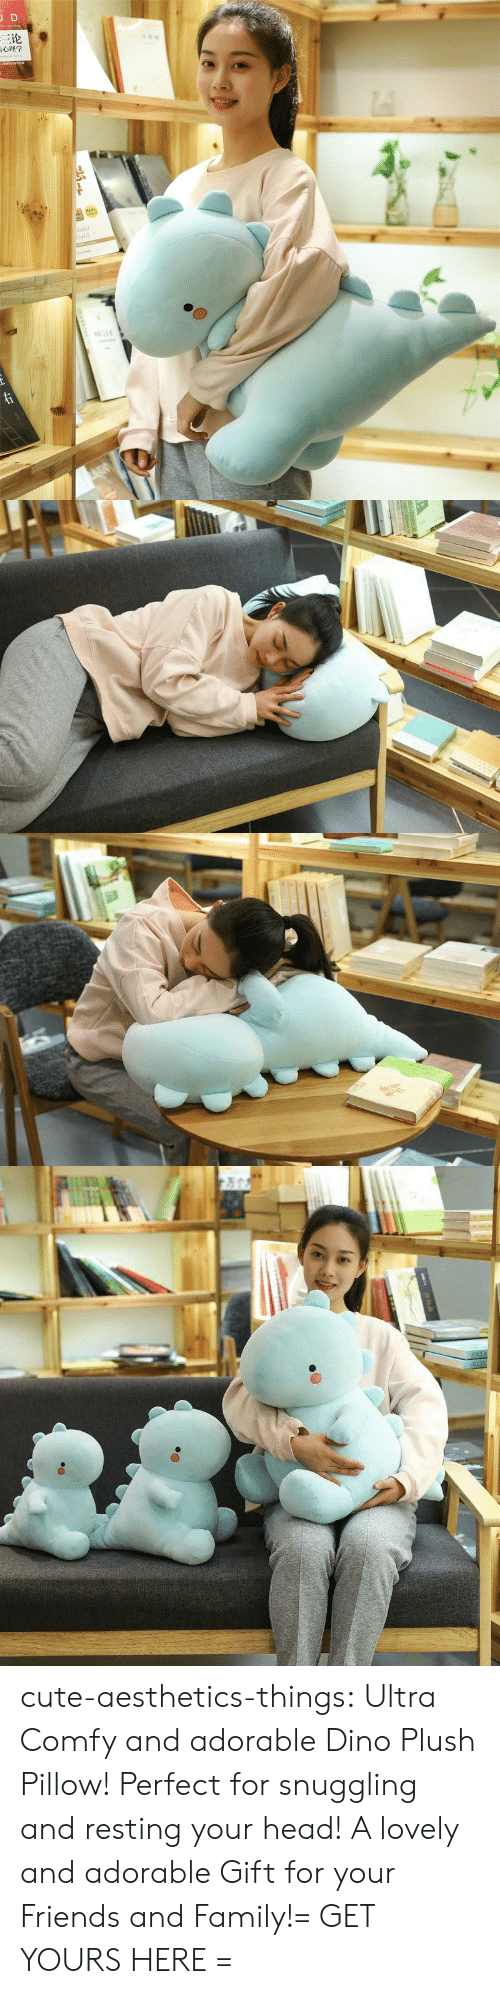 dino: JD  三论  laint  orld  TNAR  ww.e cute-aesthetics-things:  Ultra Comfy and adorable Dino Plush Pillow! Perfect for snuggling and resting your head! A lovely and adorable Gift for your Friends and Family!= GET YOURS HERE =